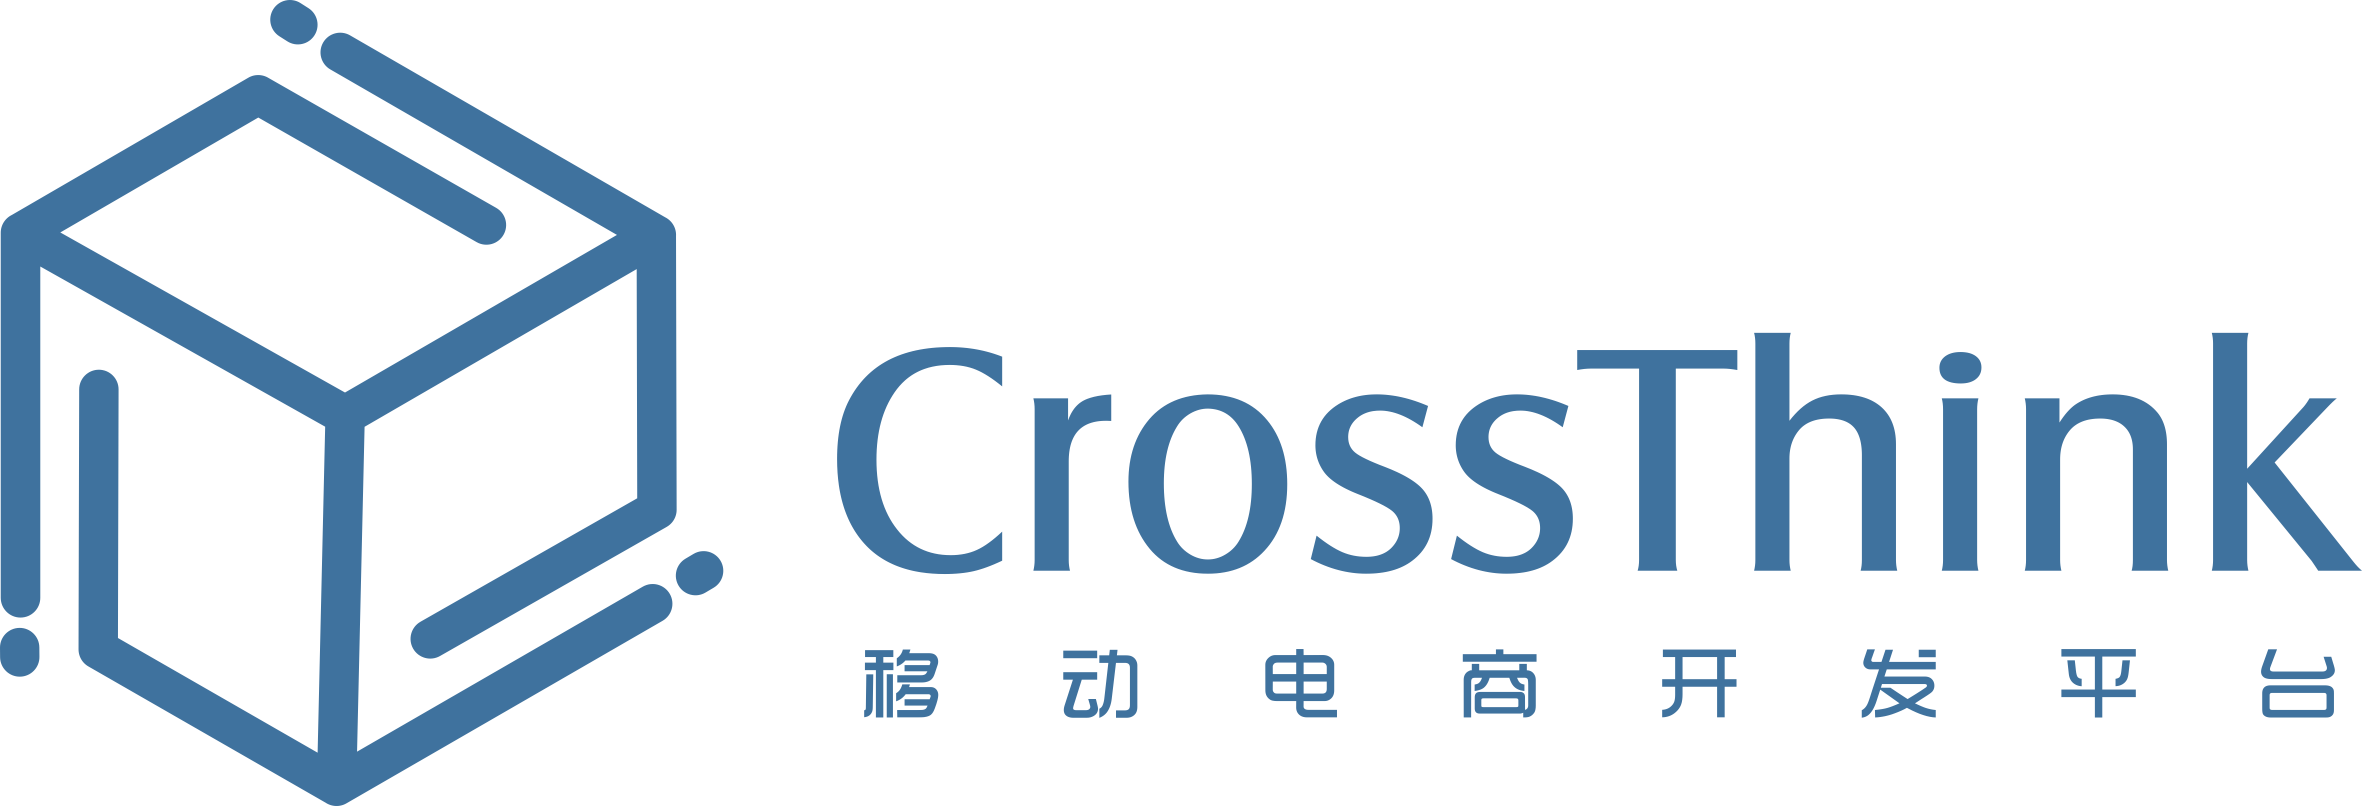 CrossThink-02-a